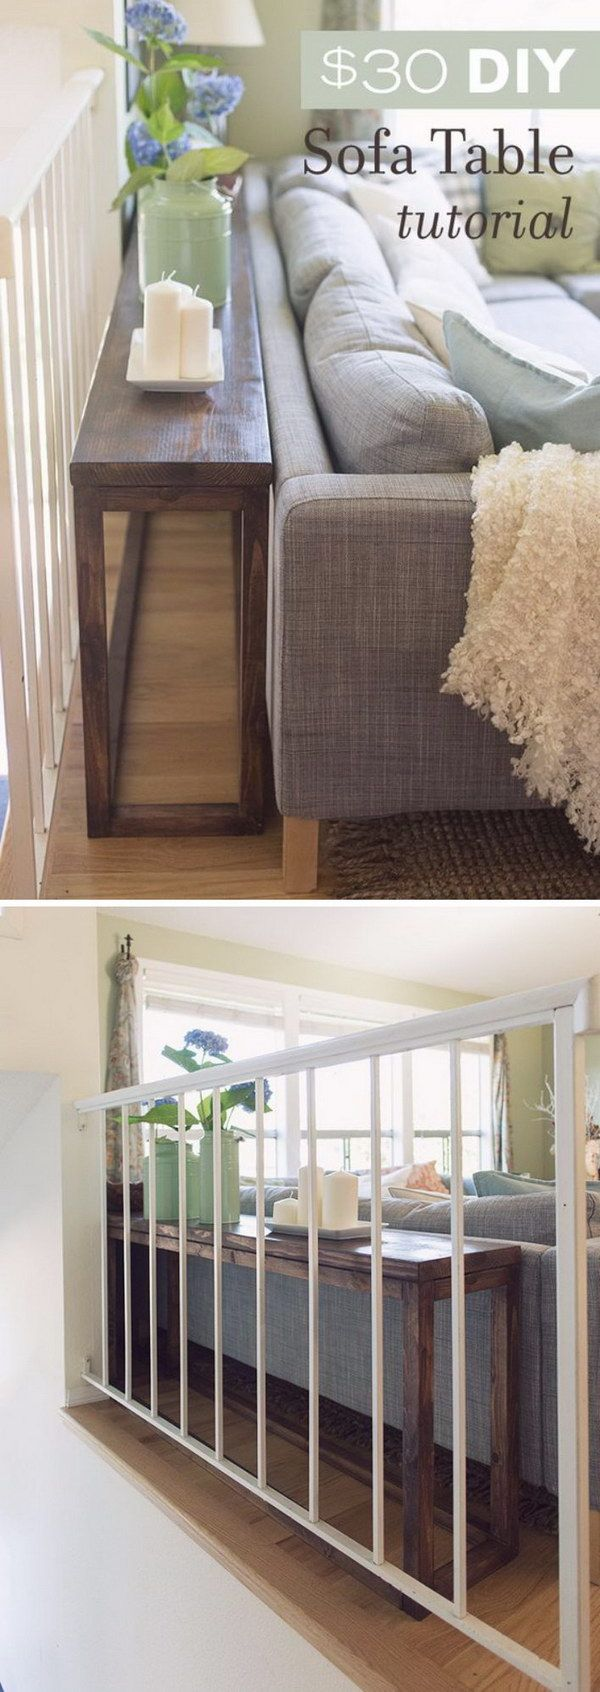 Sofa table tutorial and great ways to use the space behind the couch. #homedecor #organization